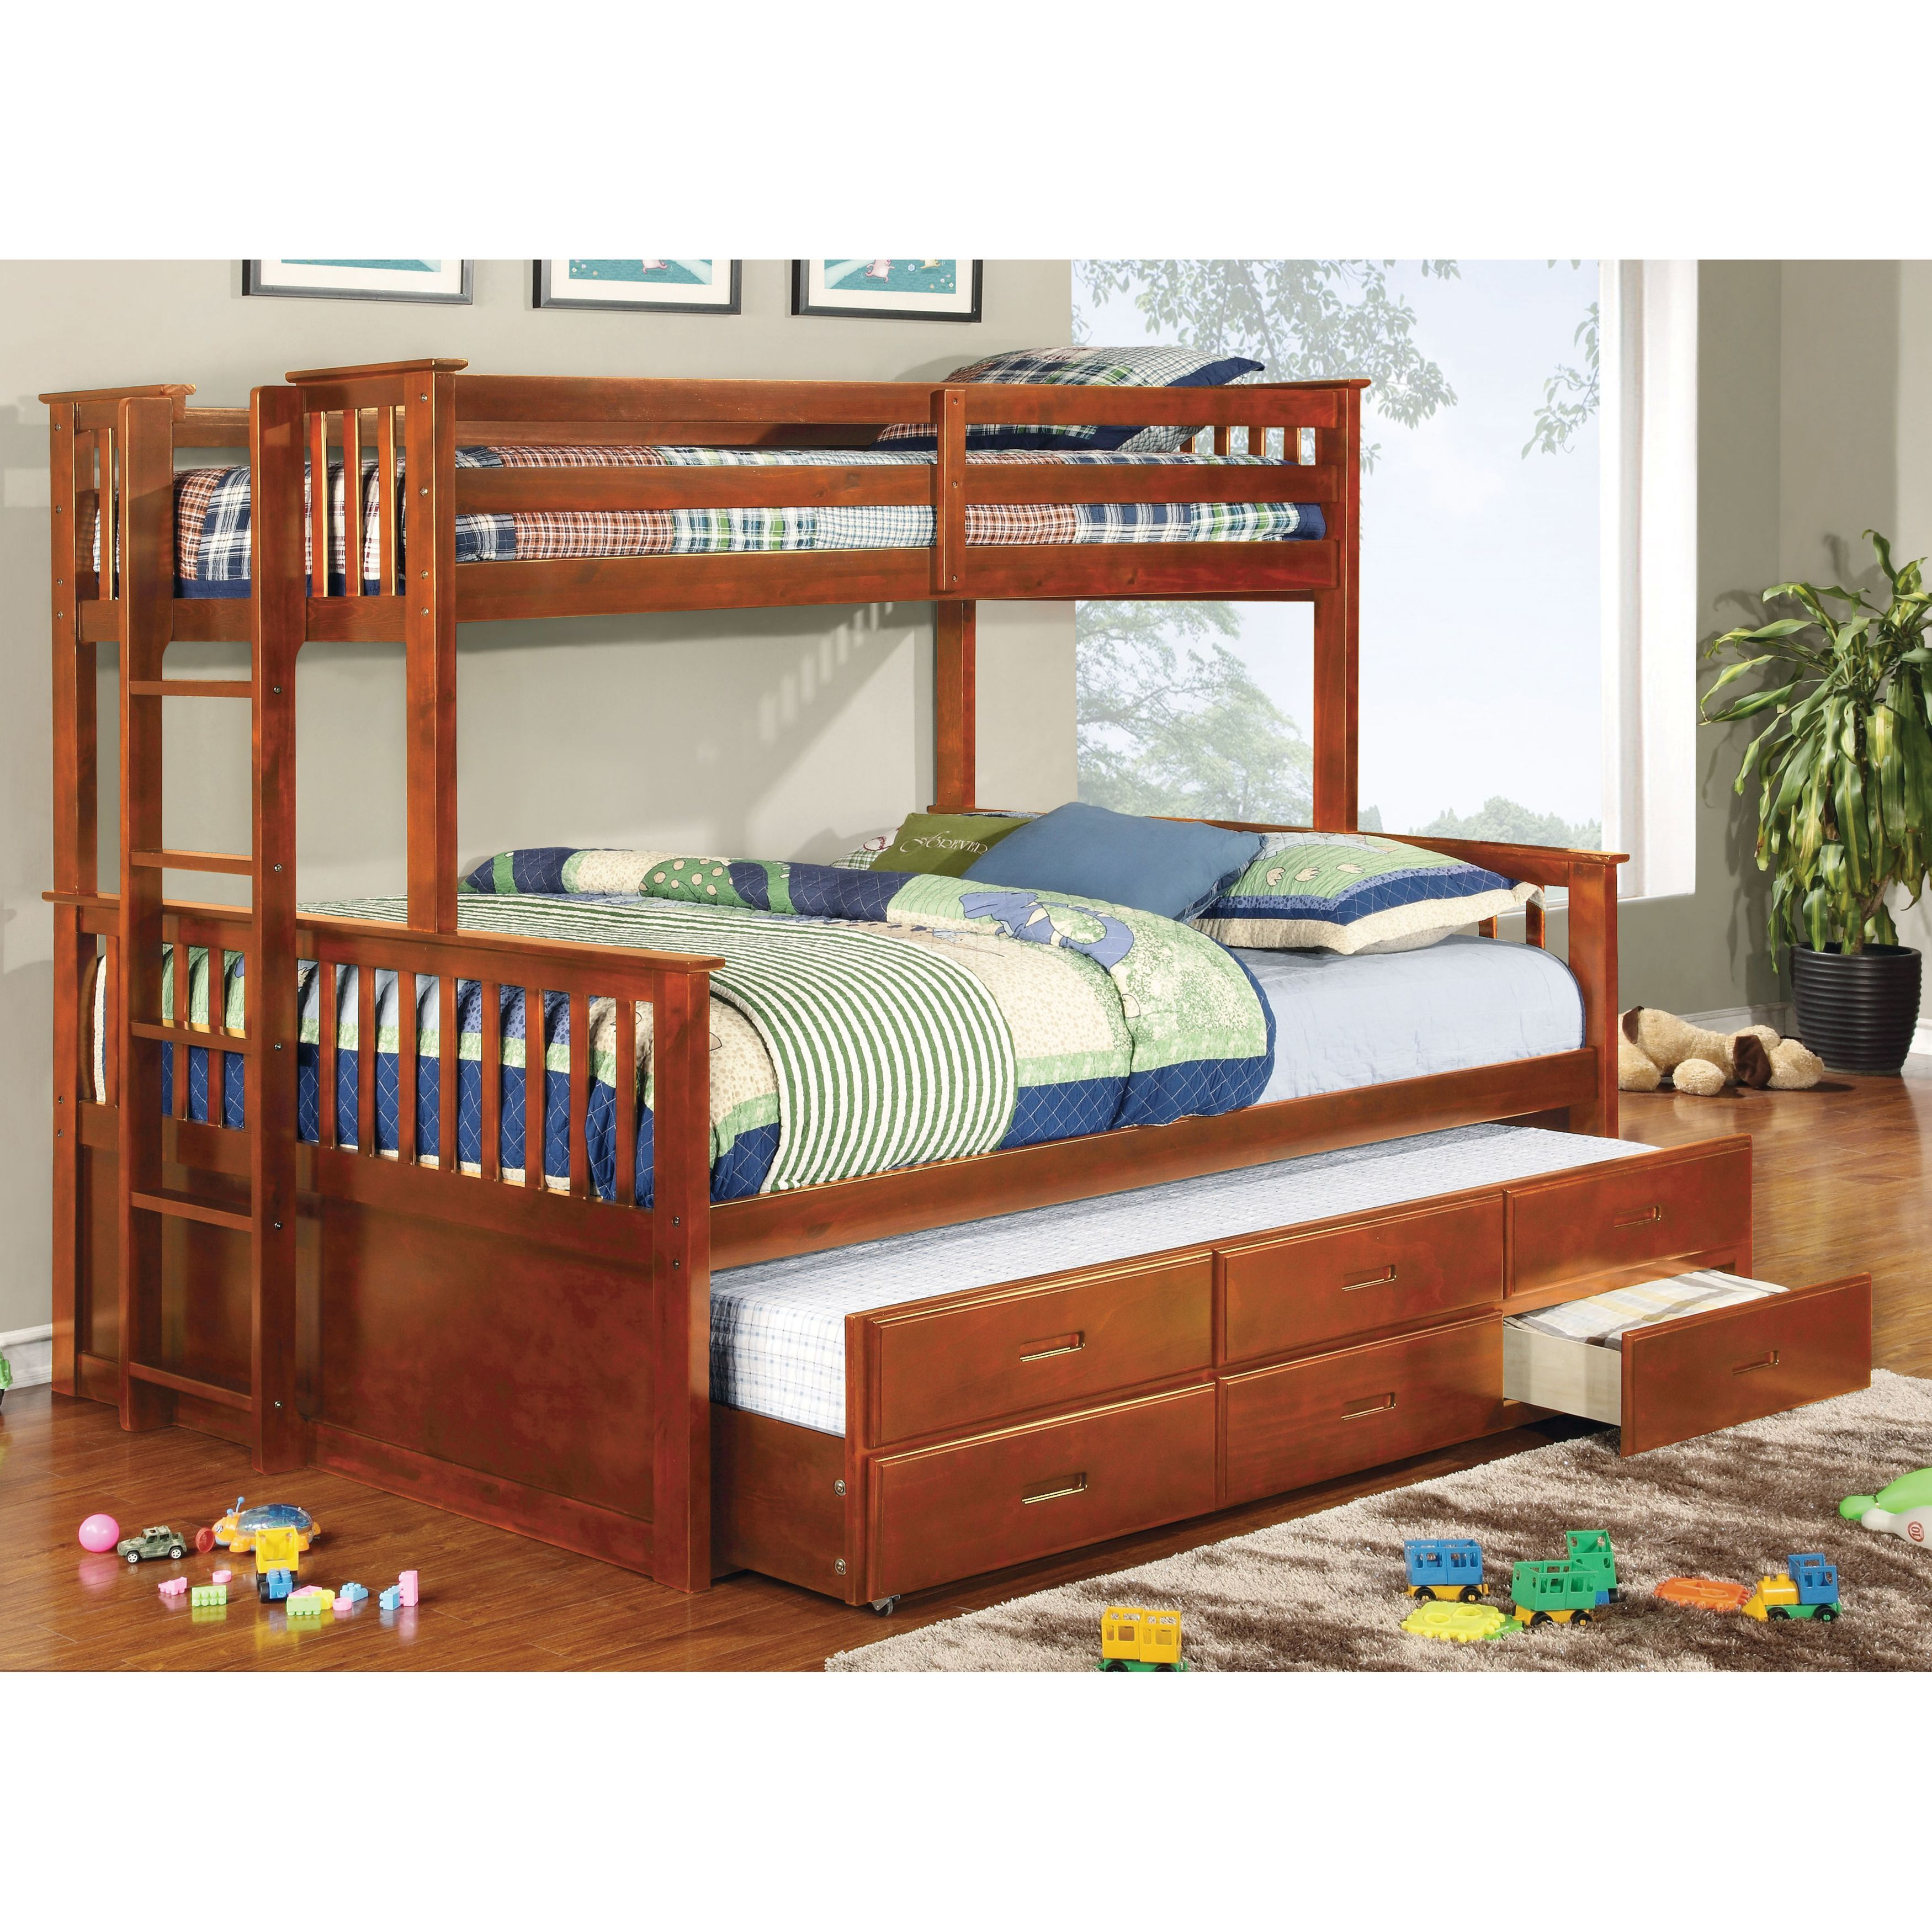 Queen size loft bed with stairs  Maximize the space in any small bedroom with this bunk bed set from